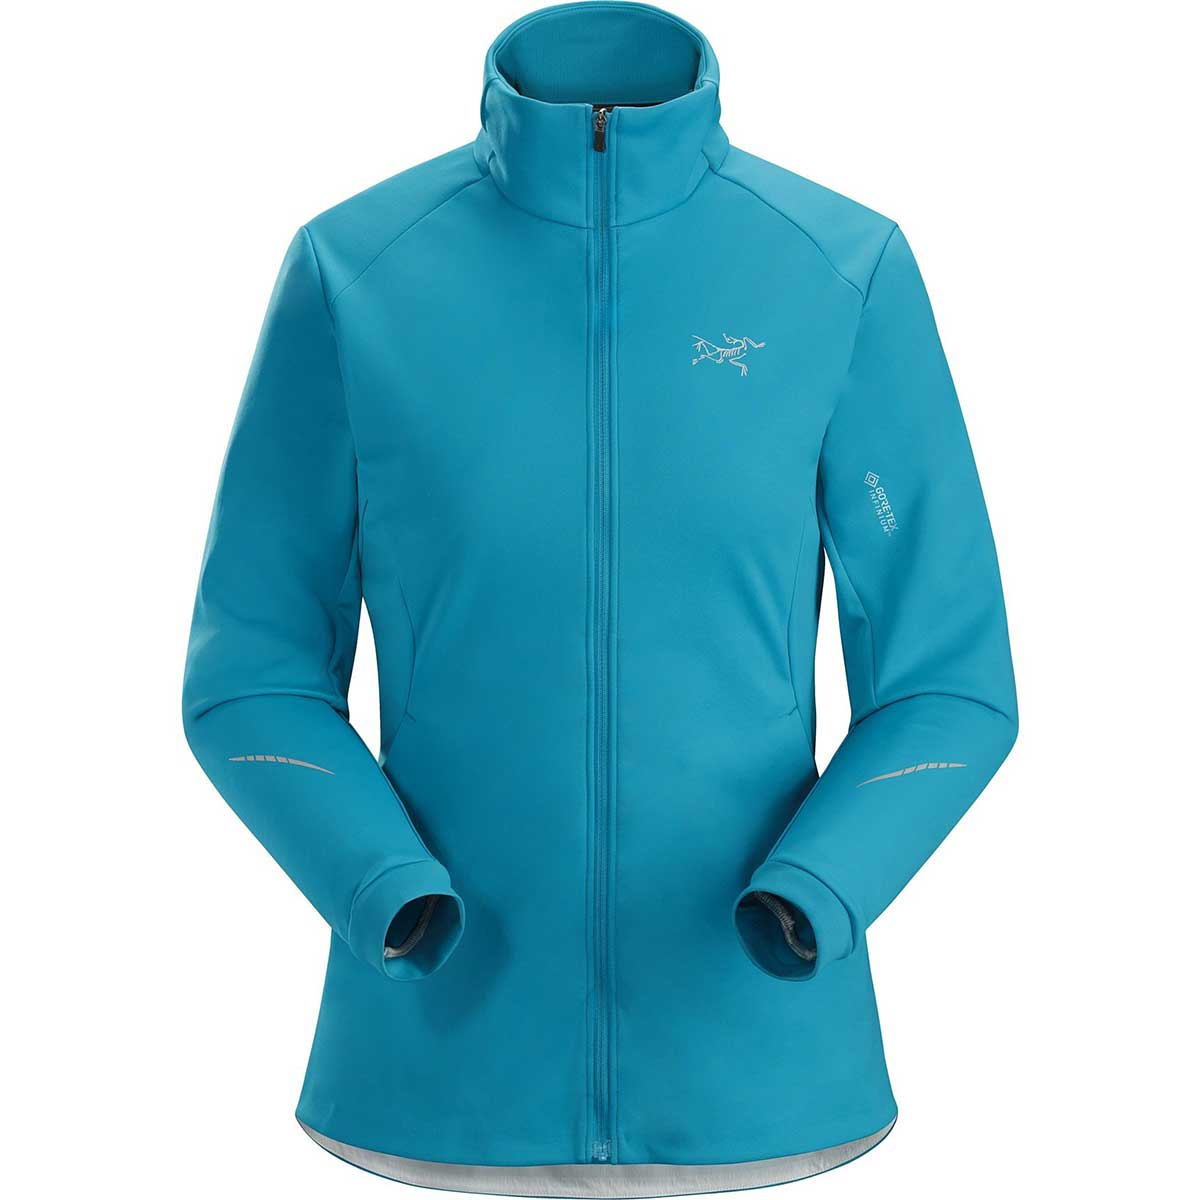 Arcteryx women's Trino Jacket in Dark Firoza front view